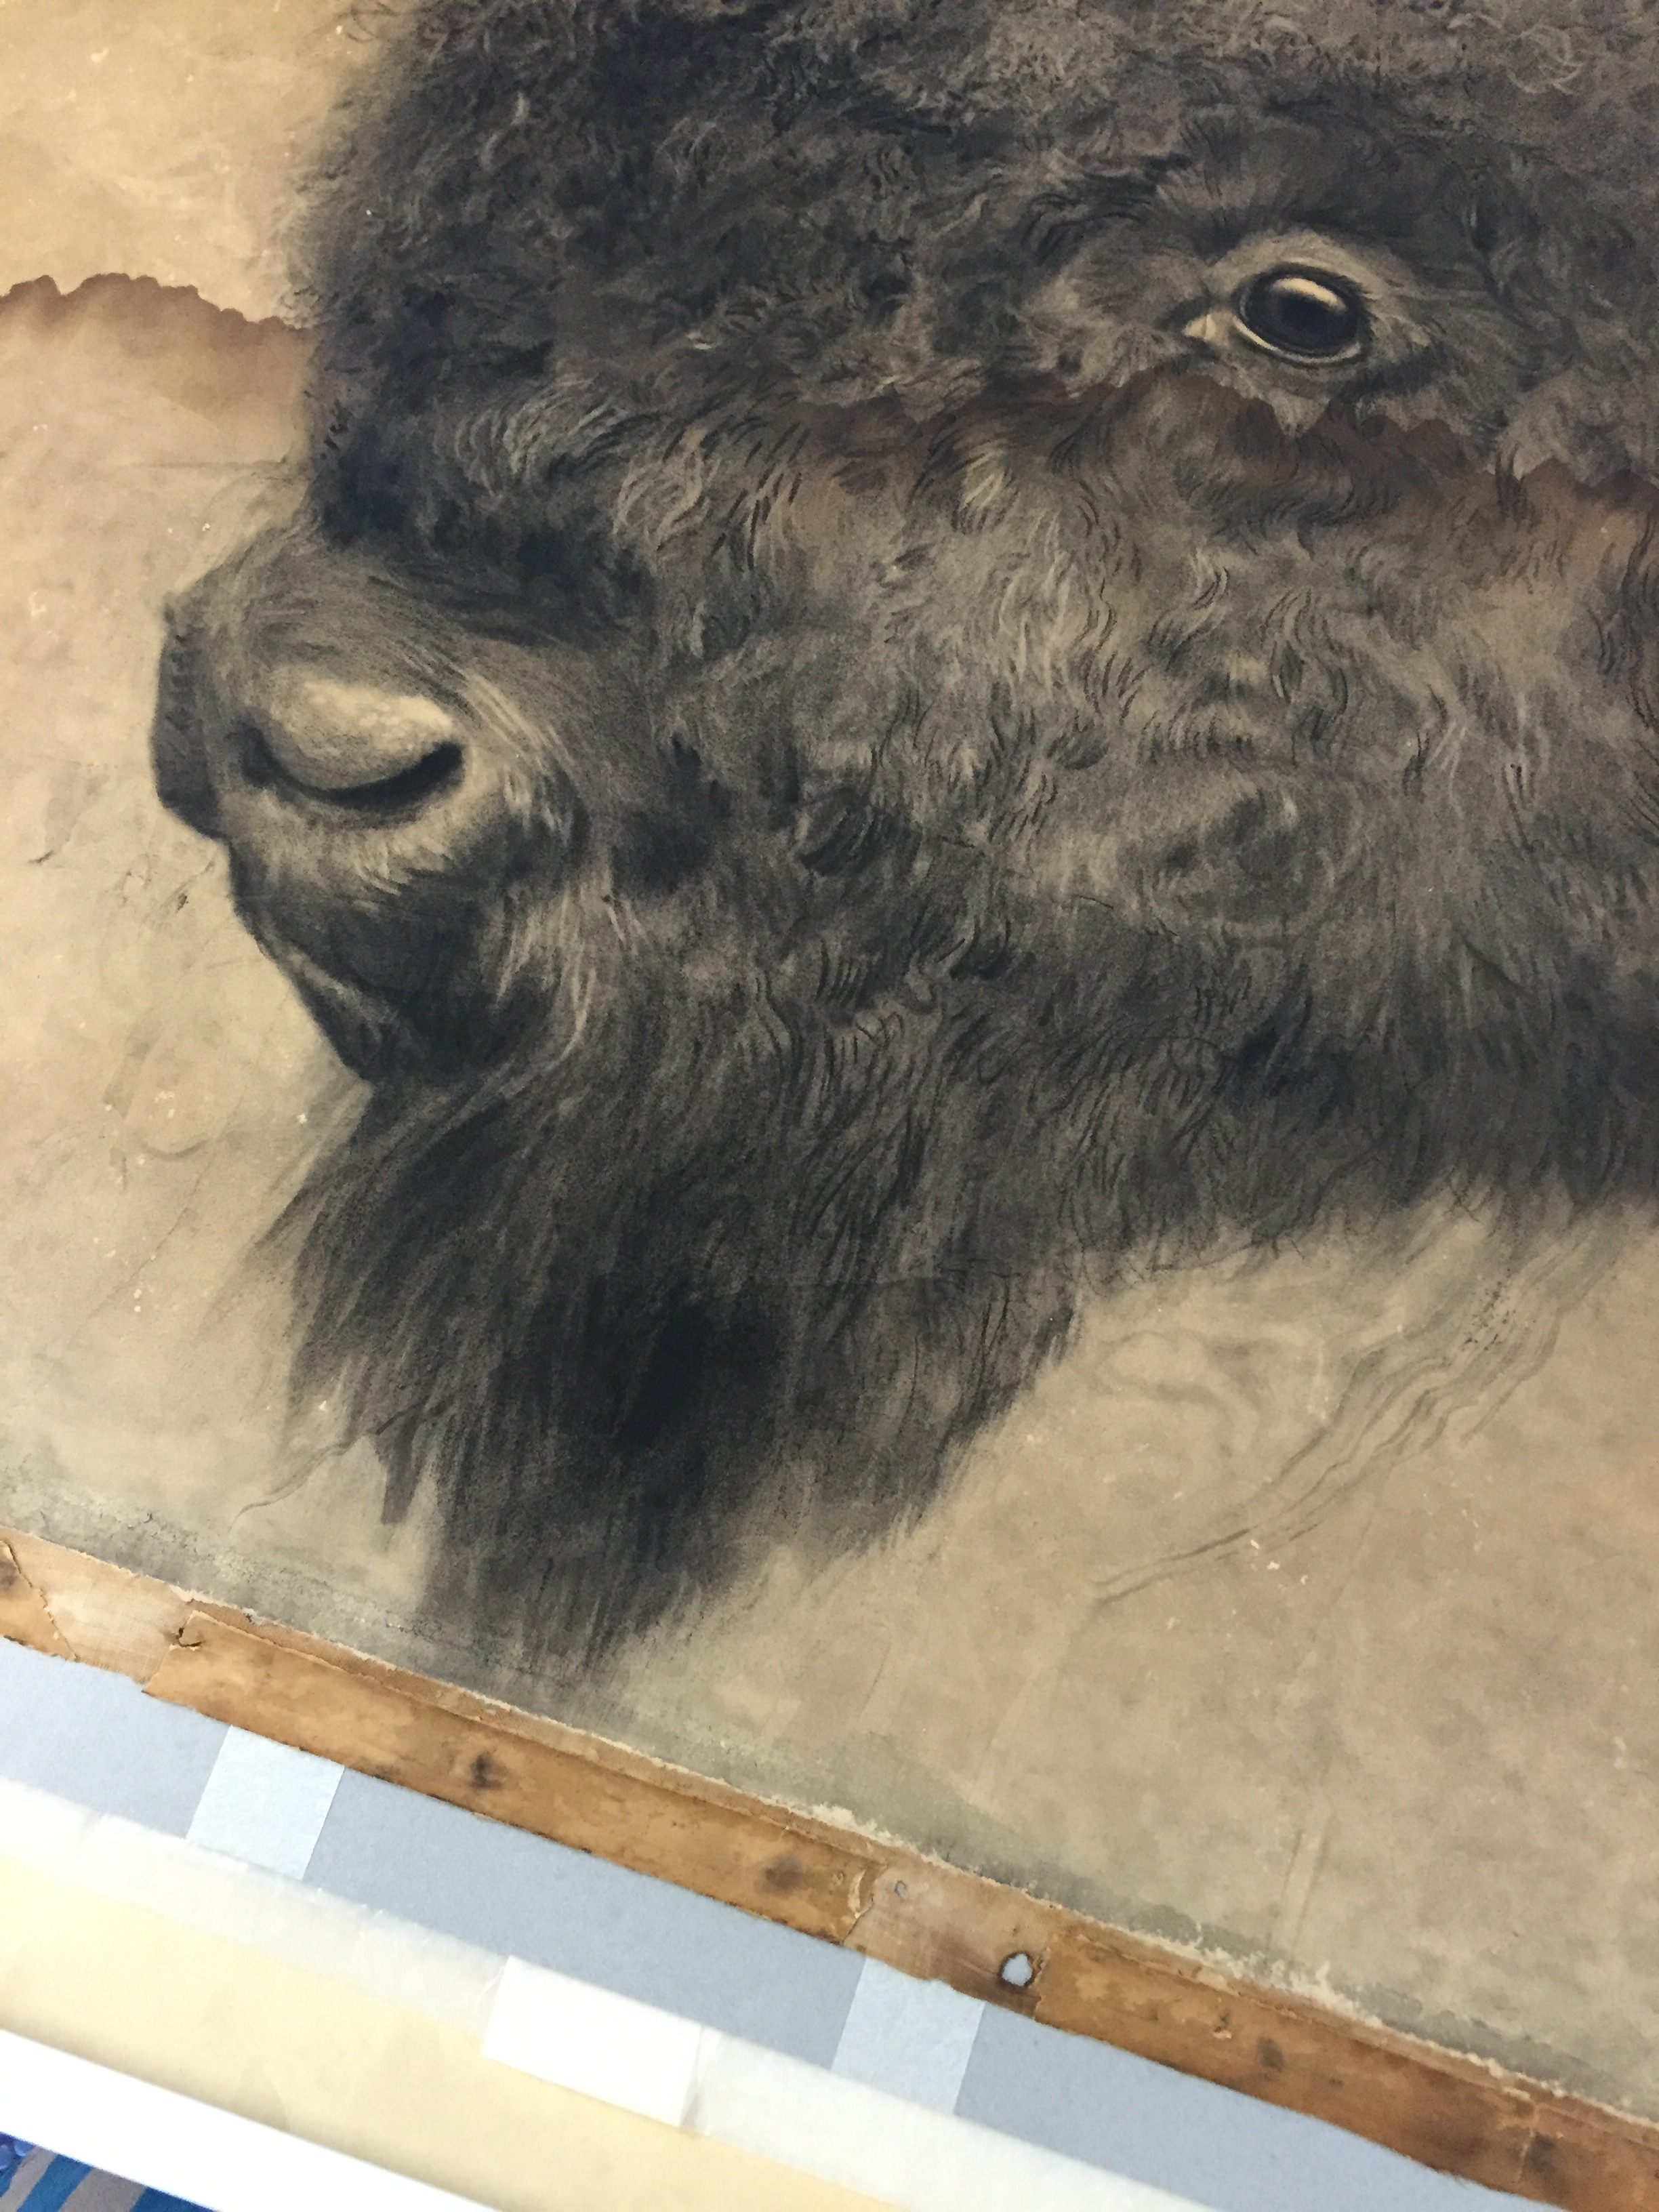 Worn tan paper with side, face-view of bison